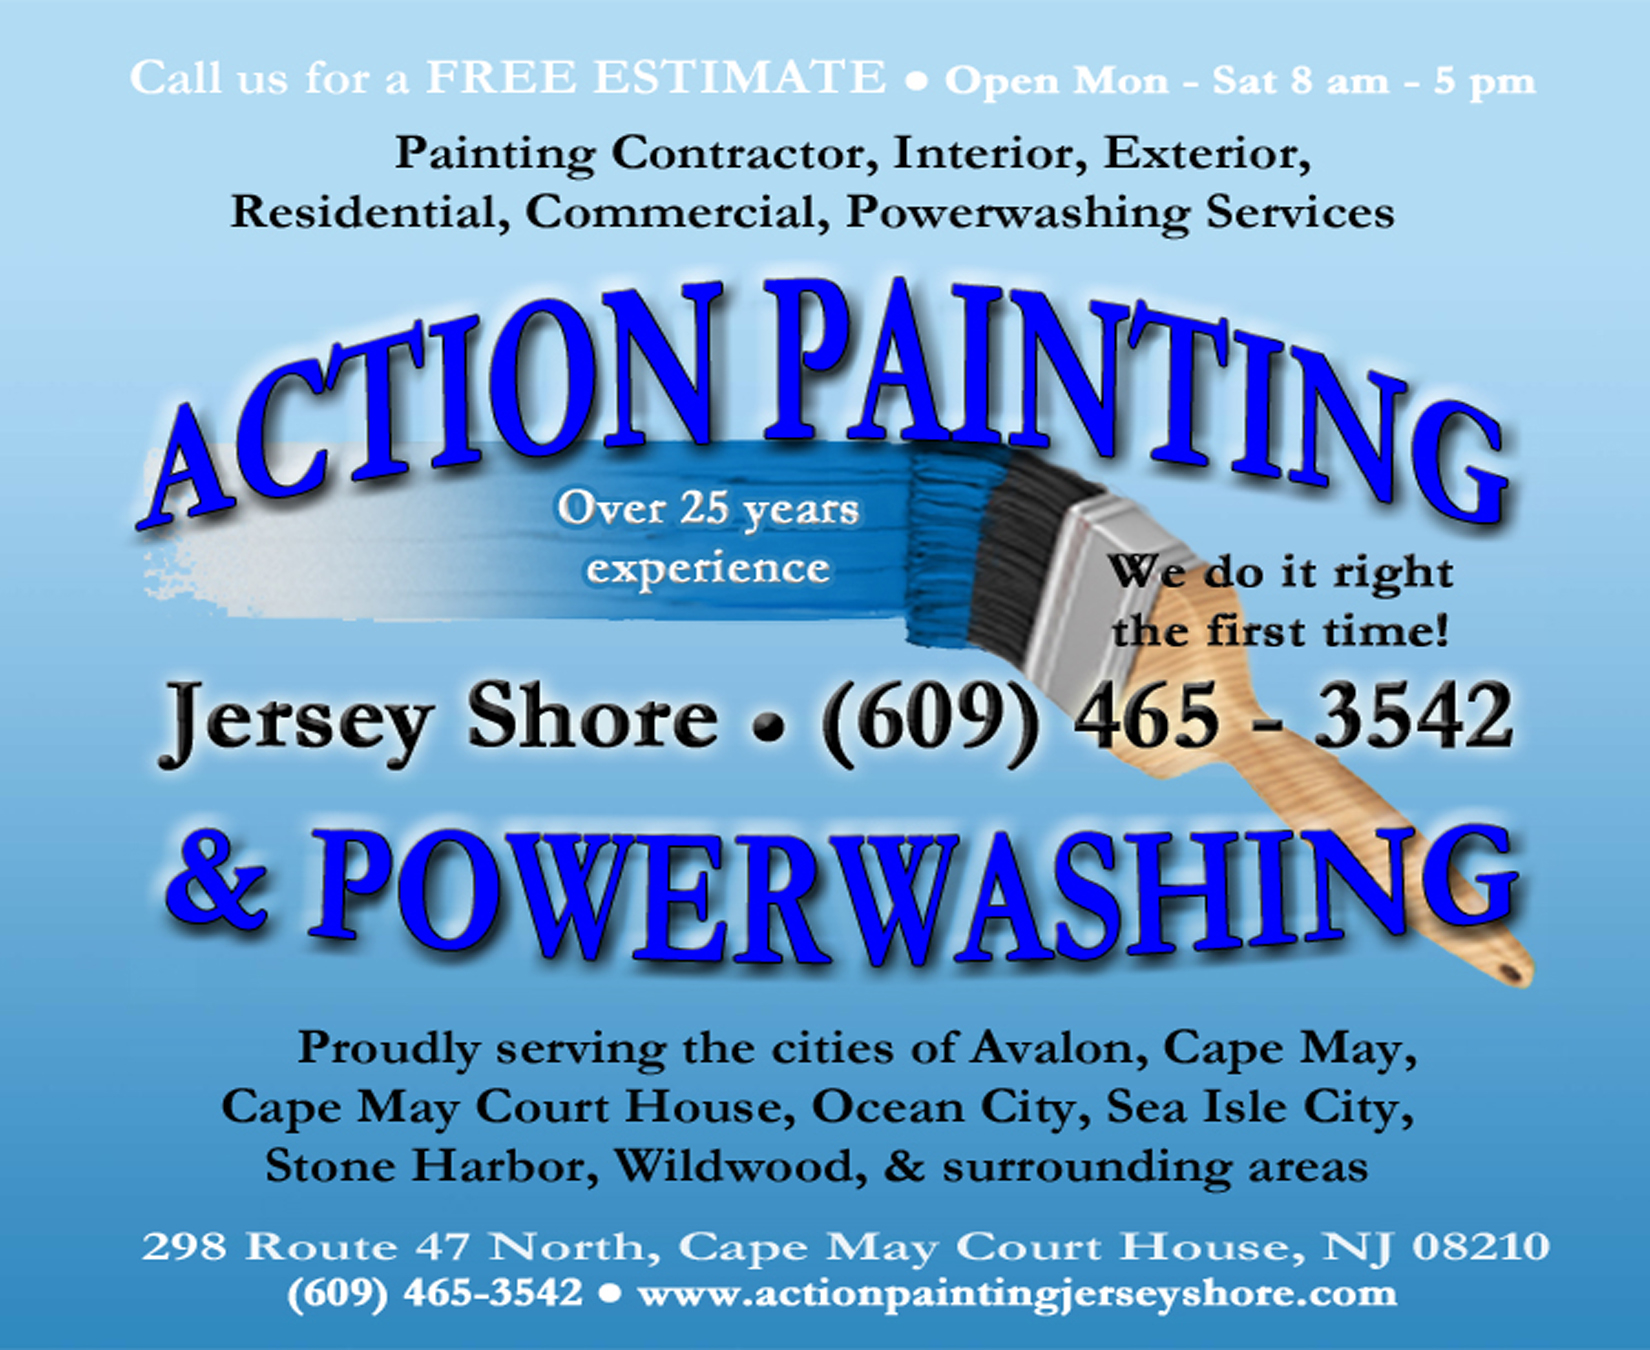 Action Painting & Powerwashing Company